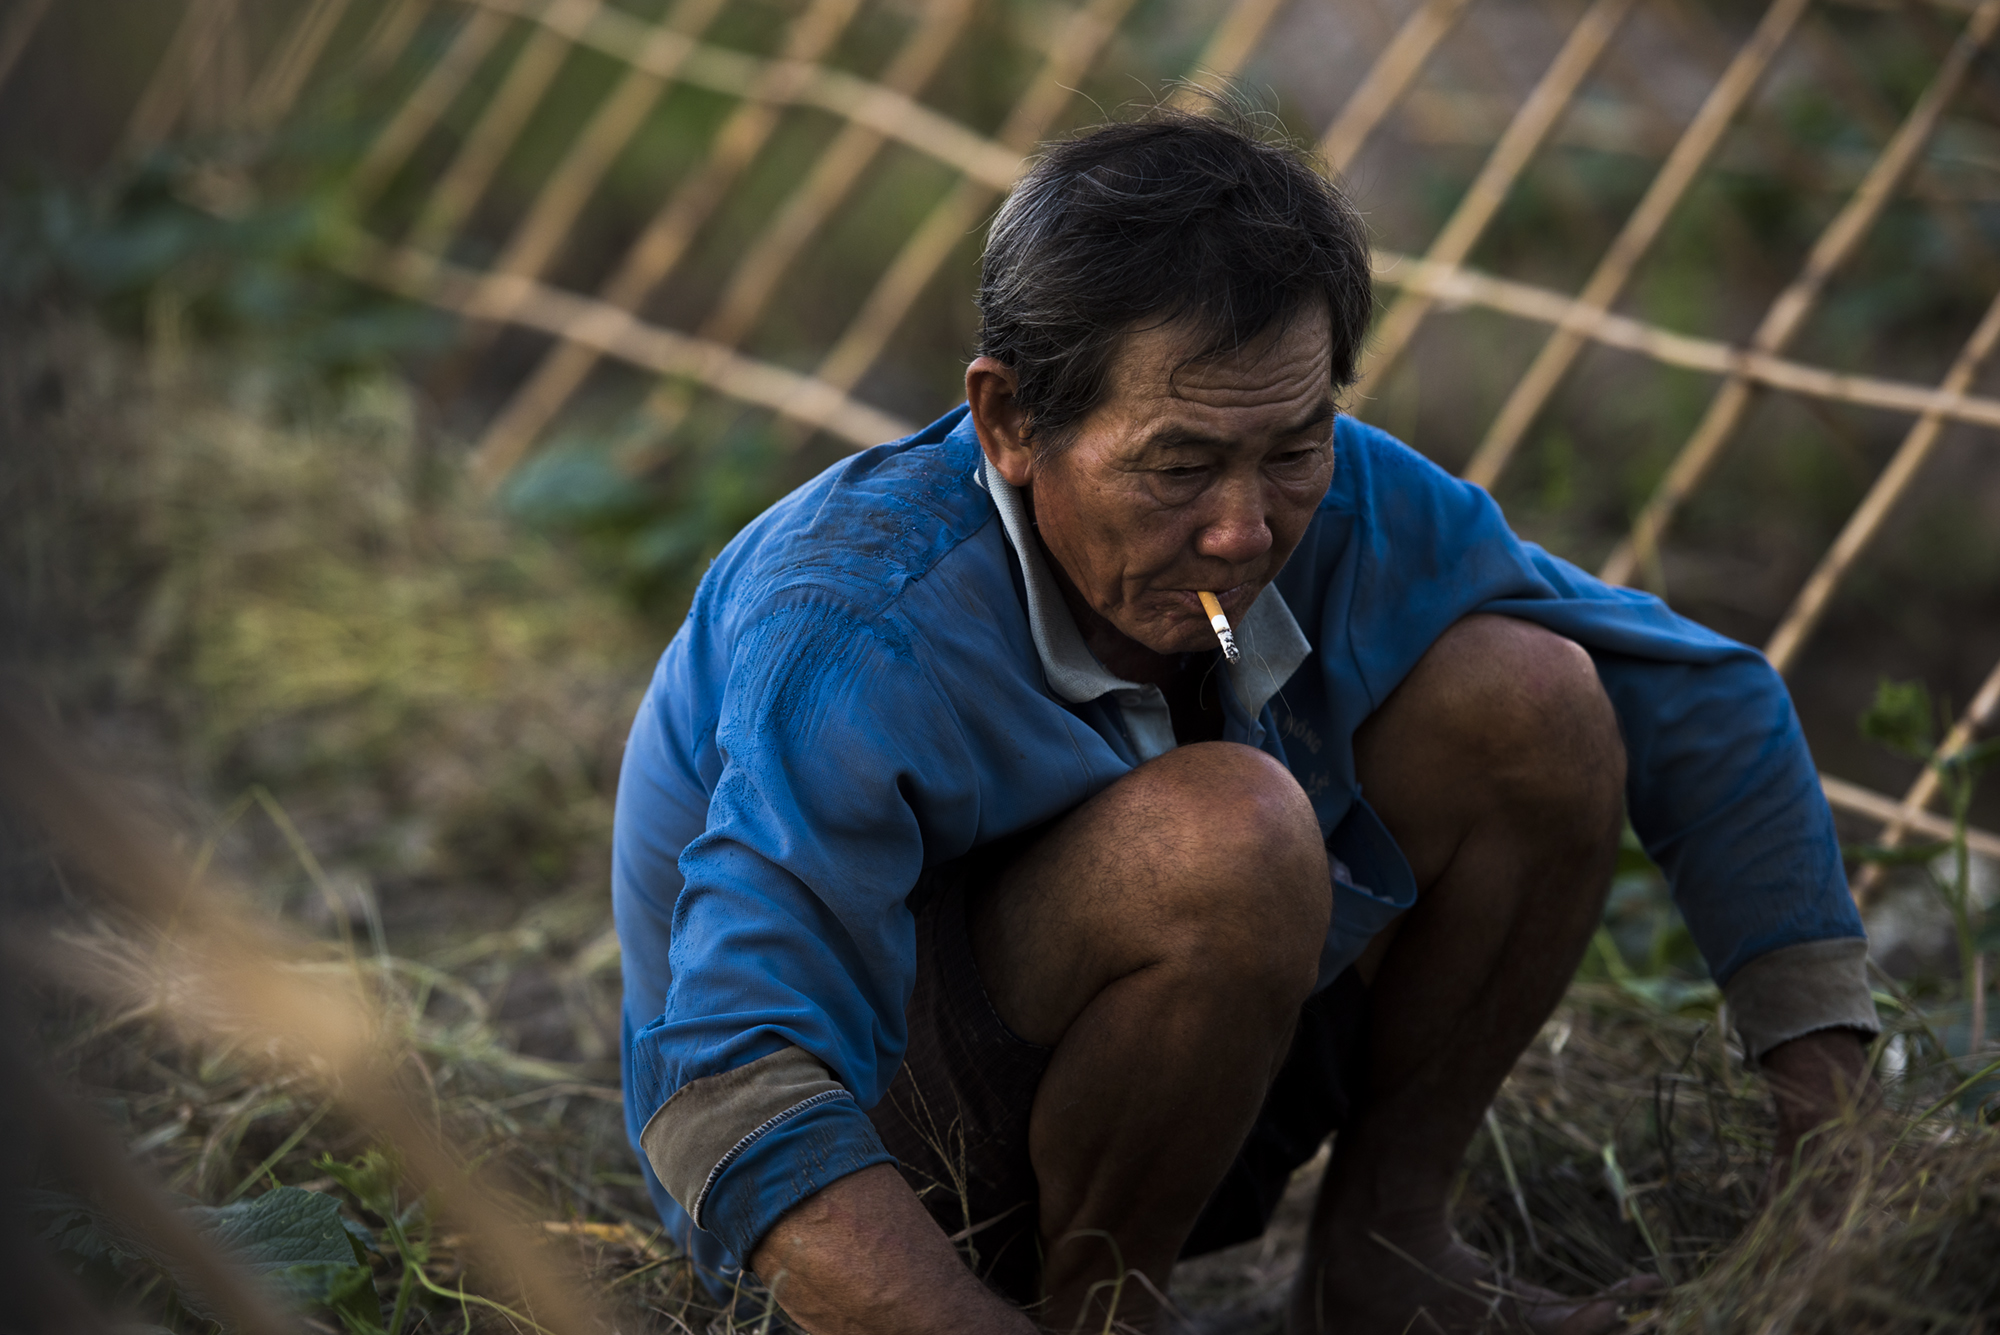 farmer smoking vietnam.jpg